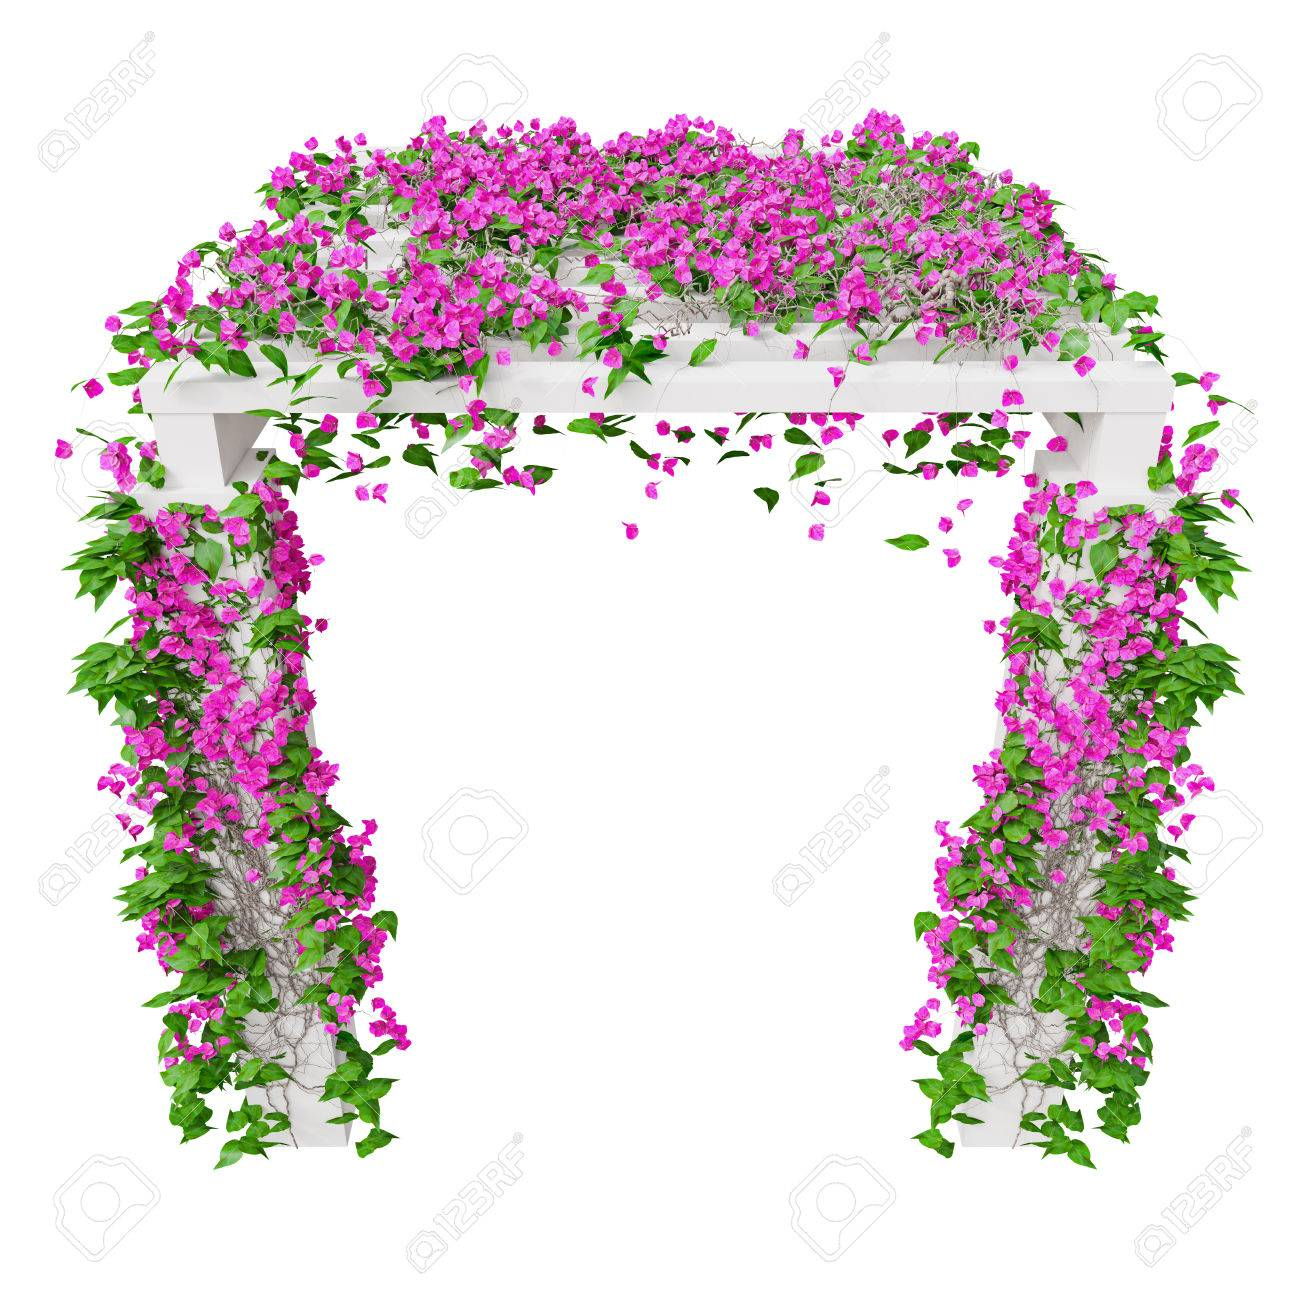 Pink Climbing Flowers Bougainvillea 3d Graphic Isolated Object